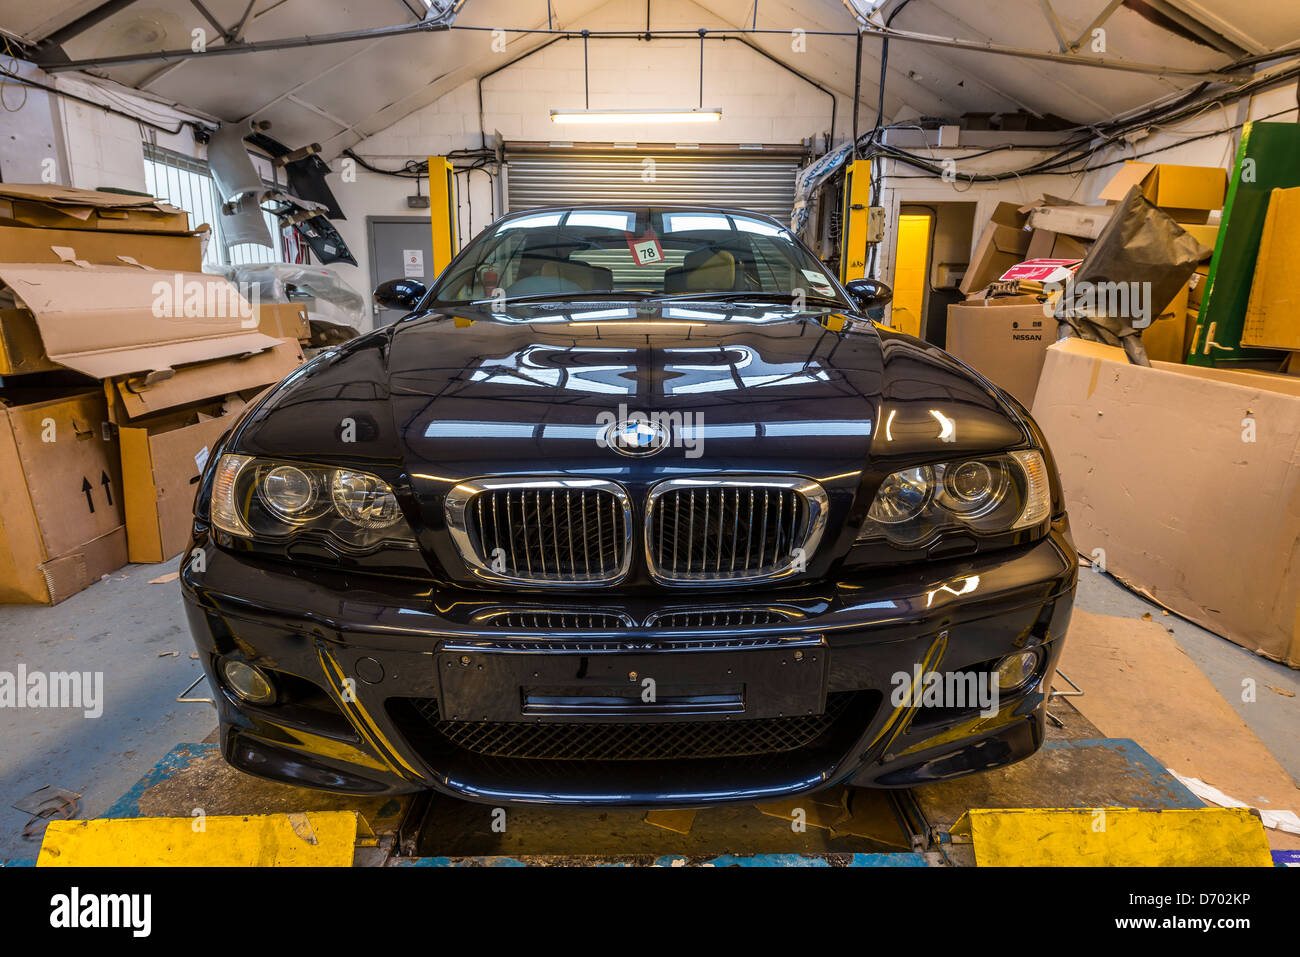 bmw m3 car repaired after crash,england,uk - Stock Image